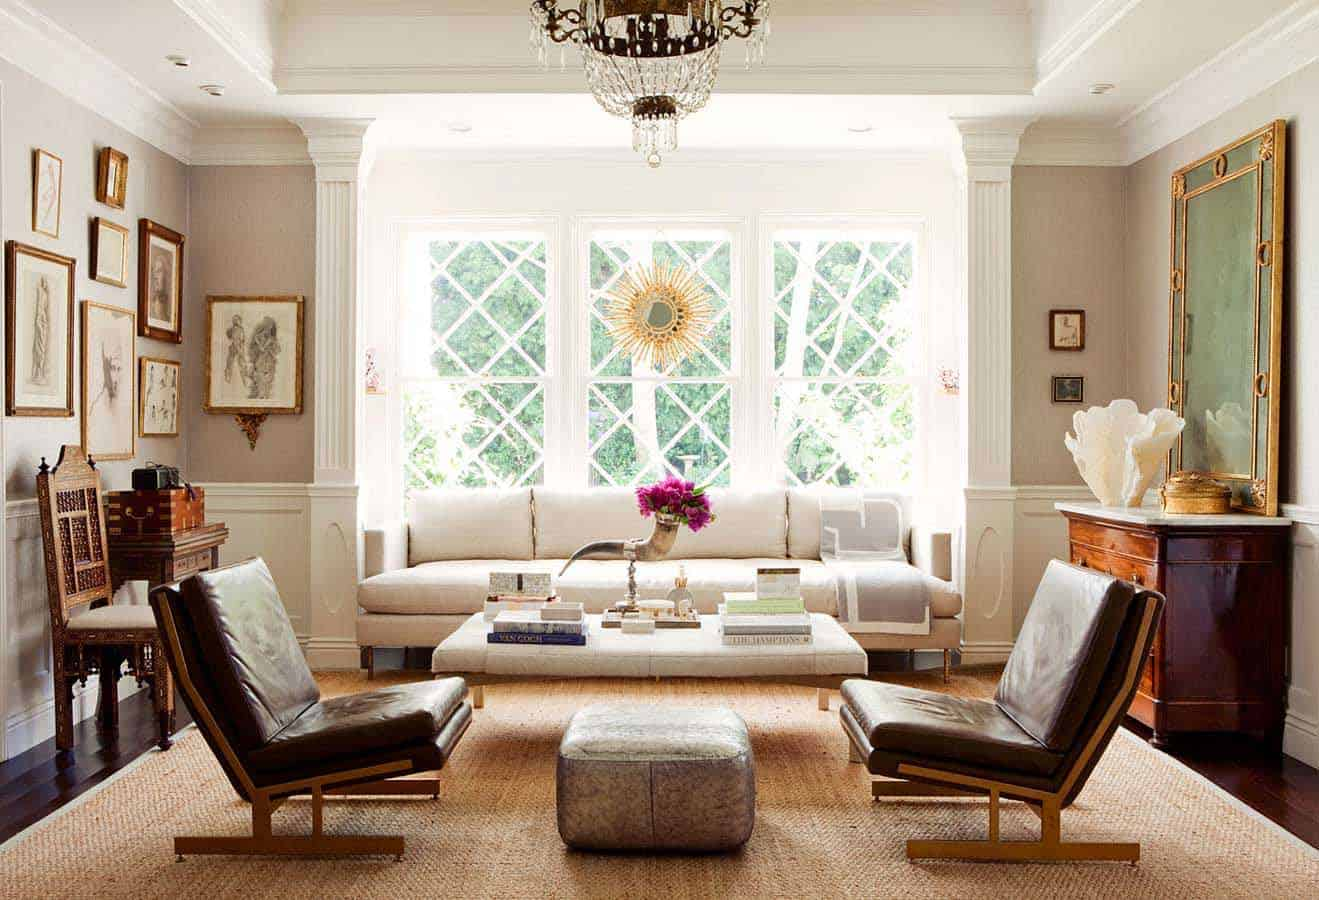 Living Room Furniture Set Up Arranging Living Room Furniture Kristina Wolf Design